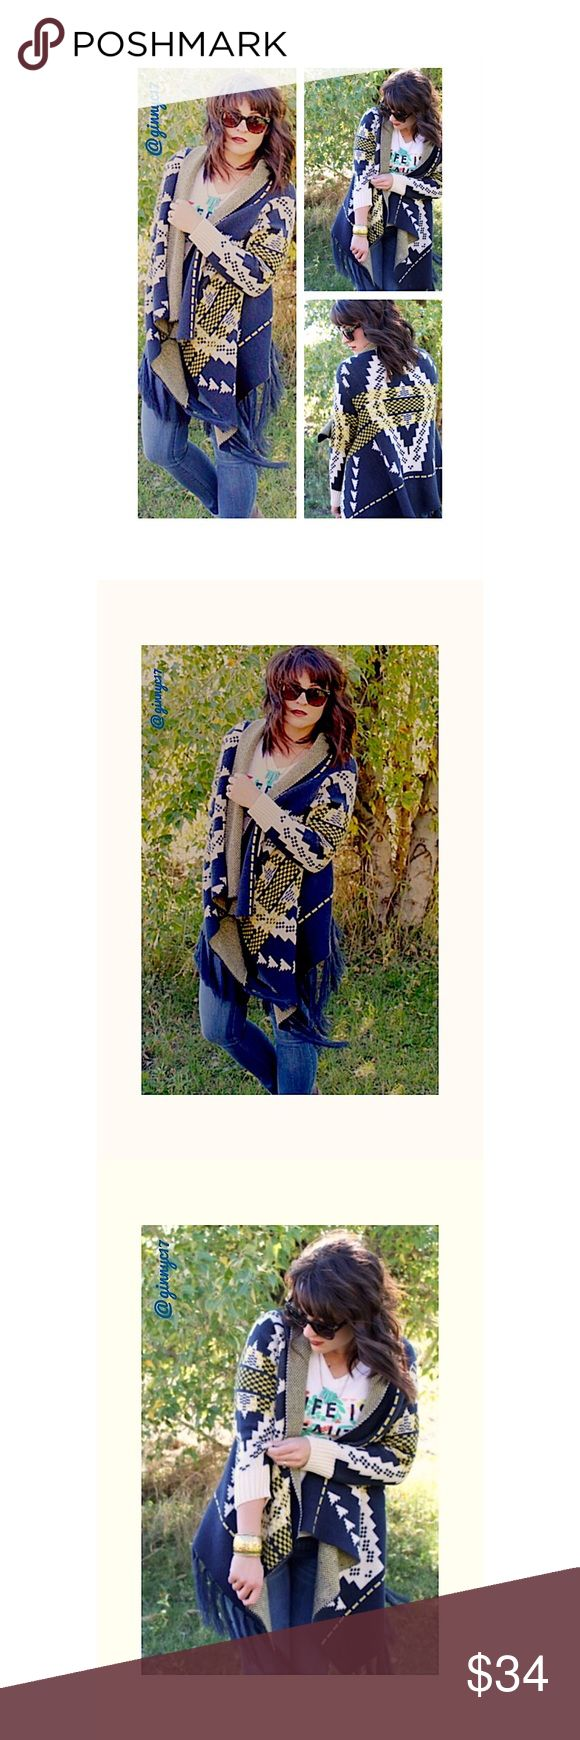 Fringed Tribal Print Cardigan Sweater Cardigan Boutique Label Fringed Tribal Print Cardigan with High/Low Hem. Get ready for Fall in this Unique Boutique Label Cozy Sweater Cardigan. Listing is for size SM/MED - Fits SIZES 2-8 *See Attached Size Chart* ❤️15% BUNDLE DISCOUNT❤️ 🛍CREATE A BUNDLE OF YOUR LIKES AND I WILL SEND YOU A PRIVATE OFFER🛍 Boutique Sweaters Cardigans